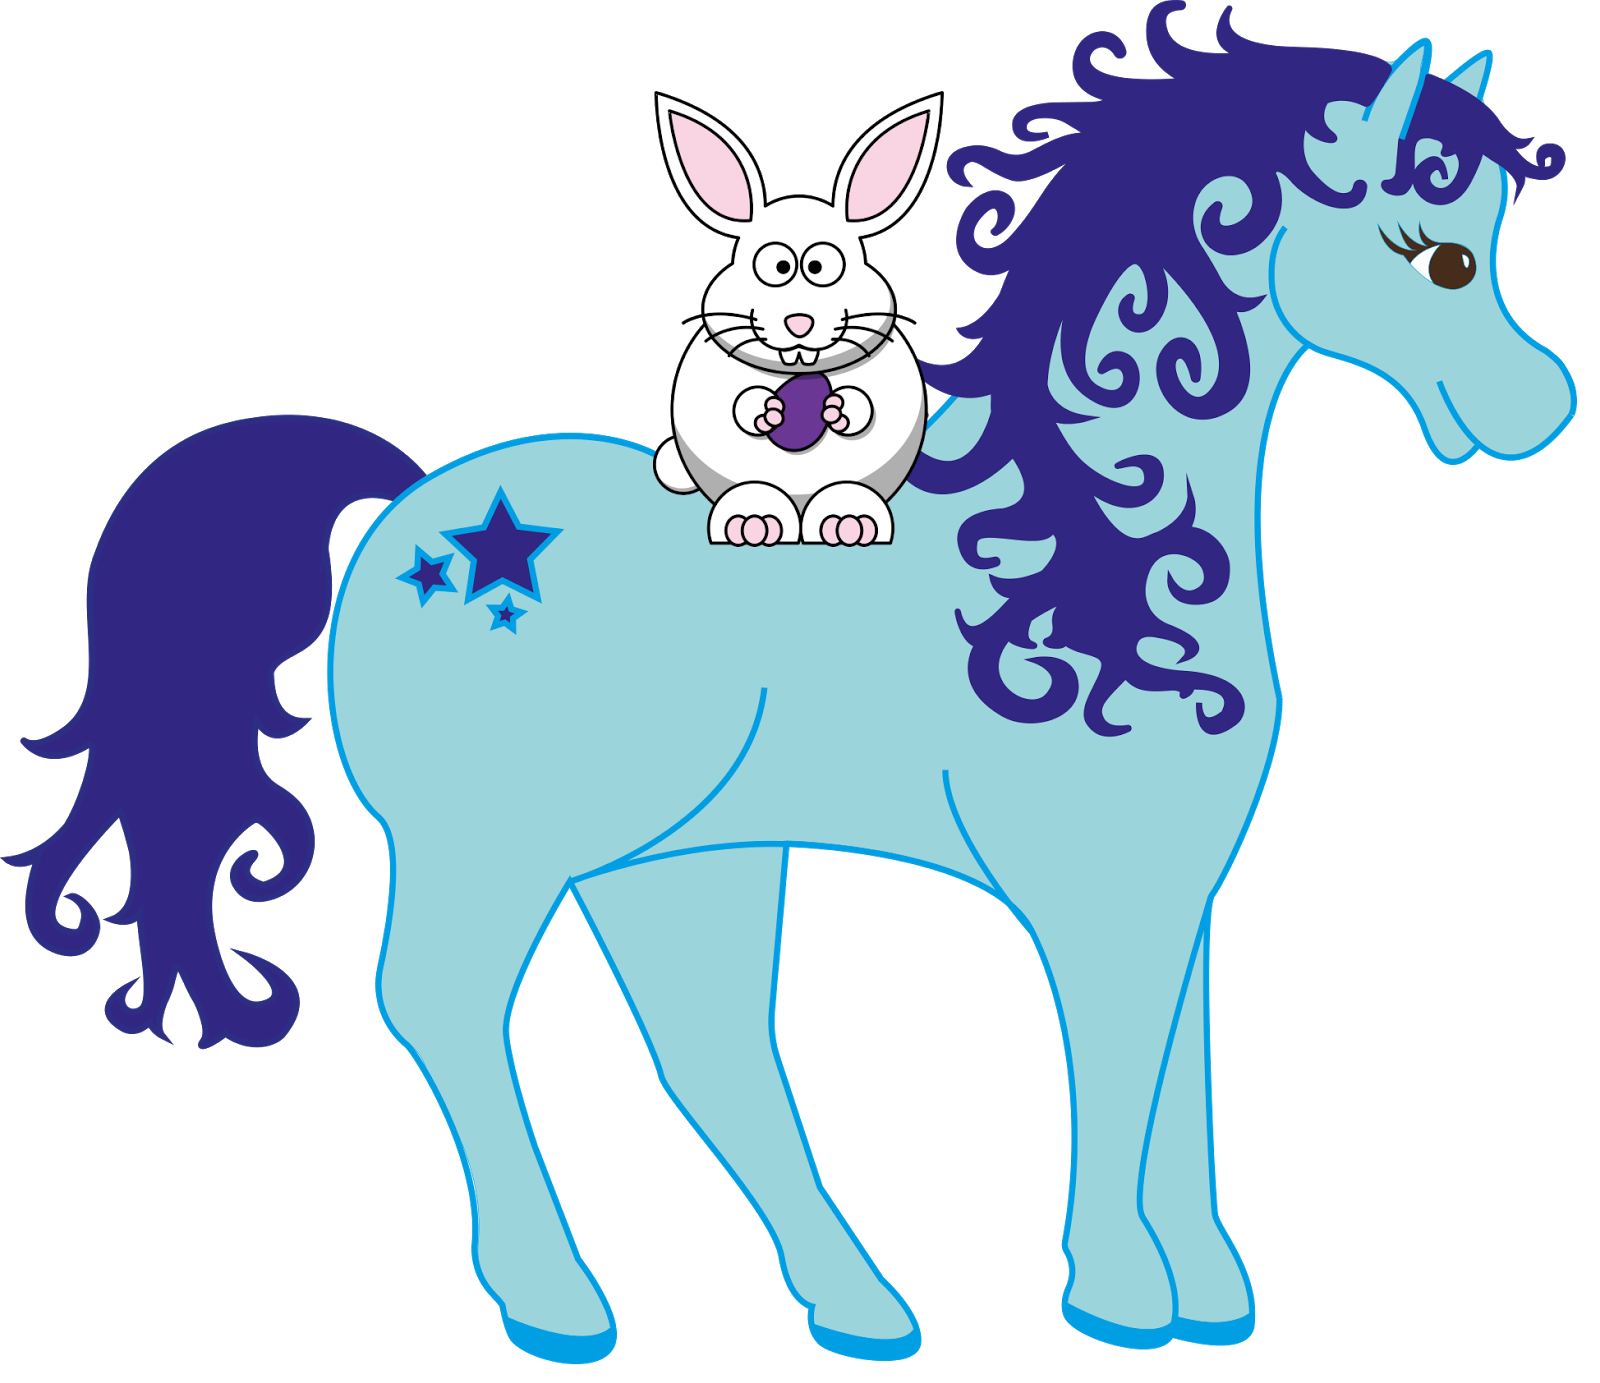 free horse easter clipart personal and commercial use rh everythinghorseandpony blogspot com clipart poney pony clip art for sale